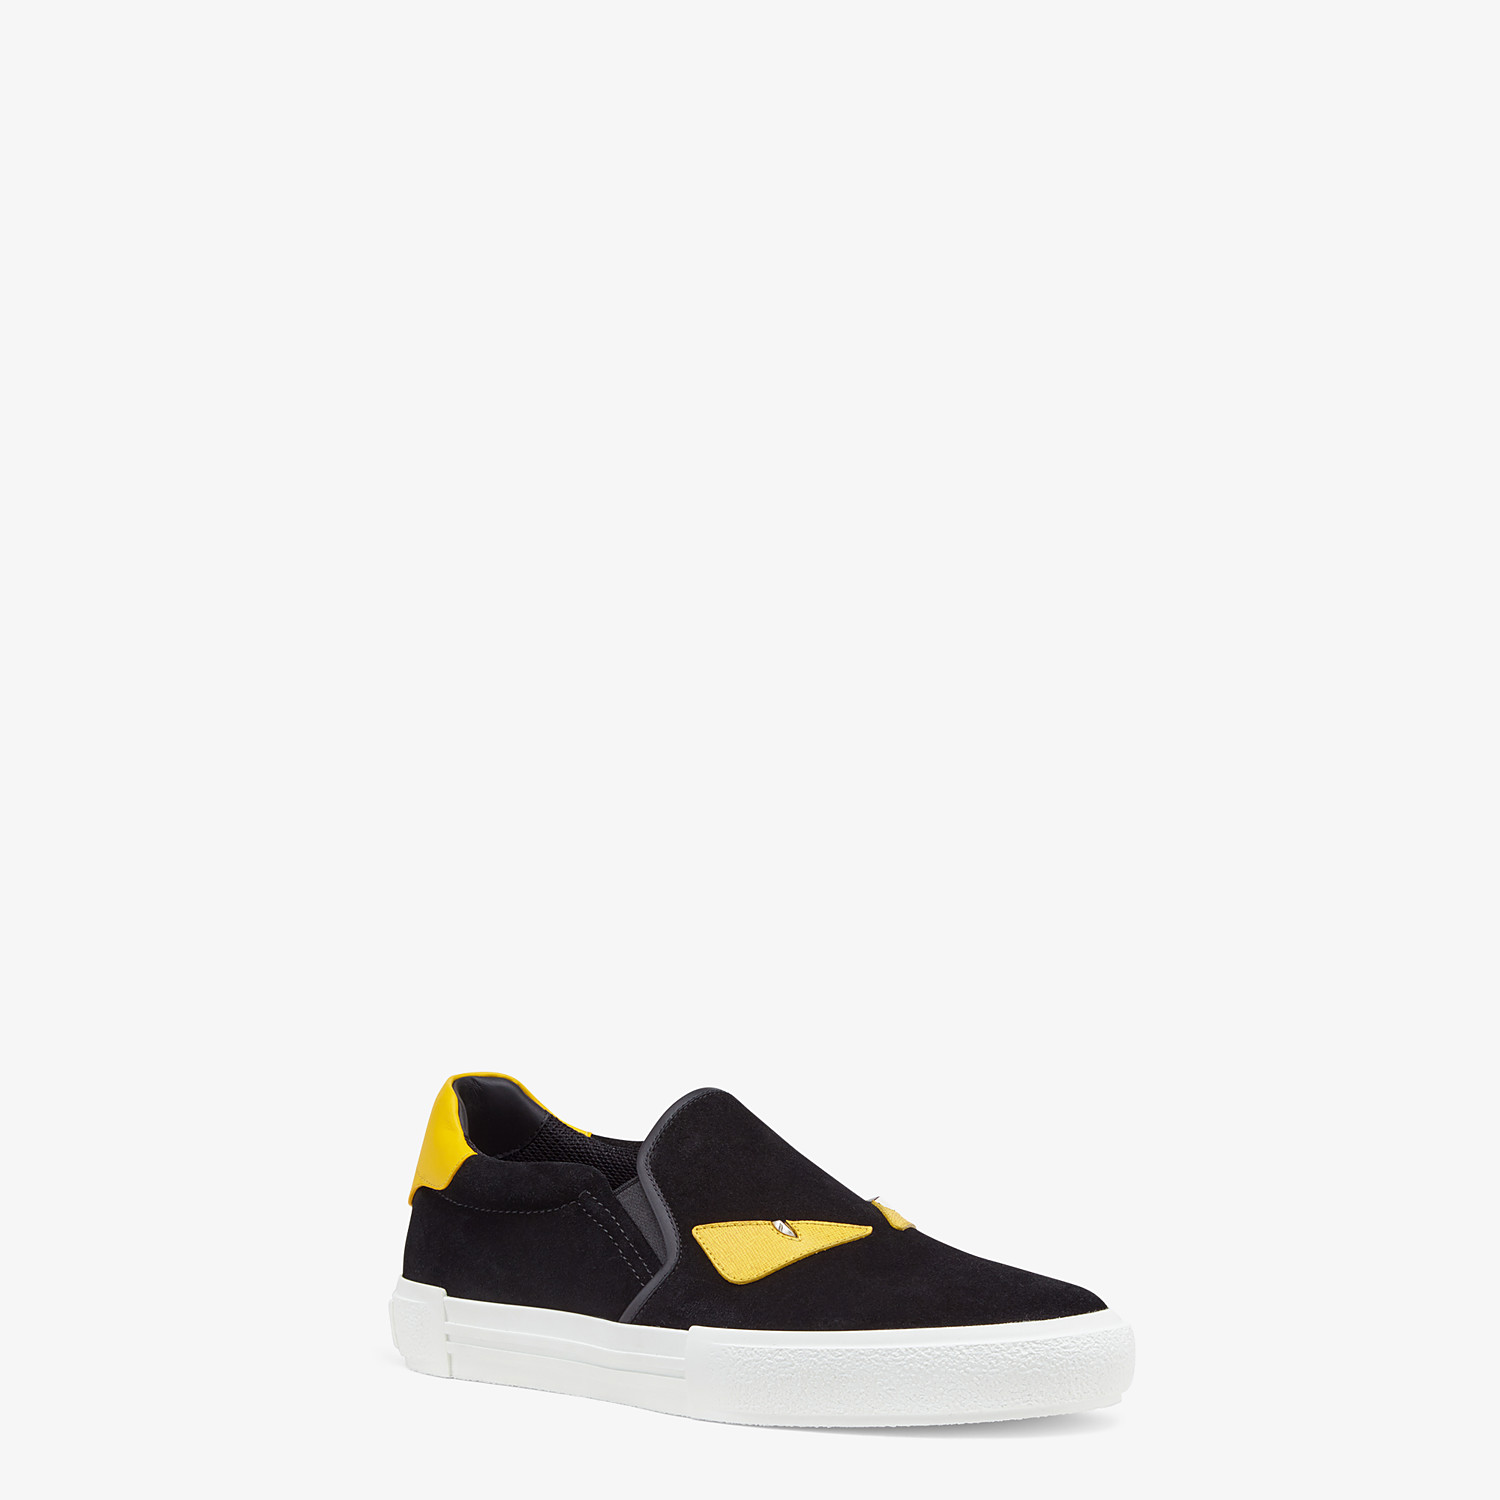 FENDI SNEAKER - Black leather slip-on - view 2 detail